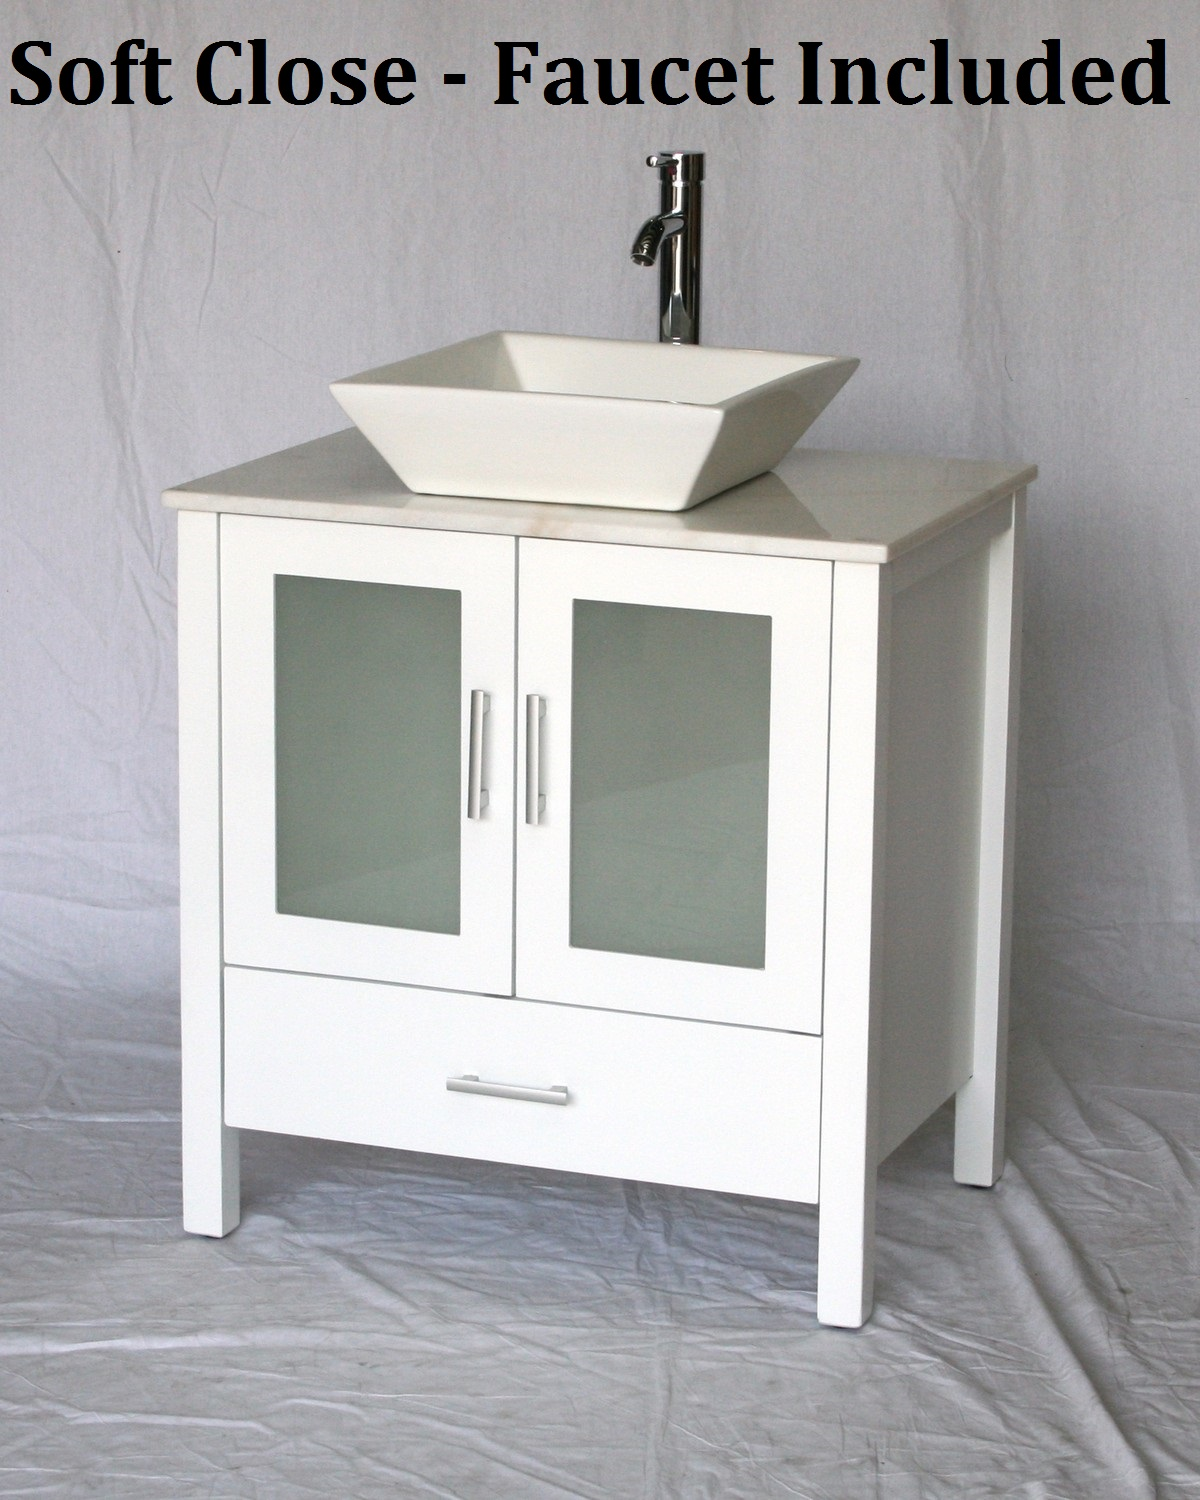 Inch White Bathroom Vanity on 30 inch vanity mirror, 30 inch bathroom vanity cottage style, 30 inch bathroom vanity set, 30 inch bathroom vanity espresso, 30 inch single bathroom vanities, 30 inch bathroom vanities with matching cabinet, 30 inch bathroom vanity modern, 30 bathroom vanity cottage white, 30 inch bathroom vanity cabinet, 30 inch bathroom vanity with bottom drawer, 30 inch vanity countertops, 30 inch bathroom vanity combo, lowe's bathroom vanities white, 30 inch bathroom vanities lowe's, 30 inch single sink vanities, 24 bathroom vanity with top in white,